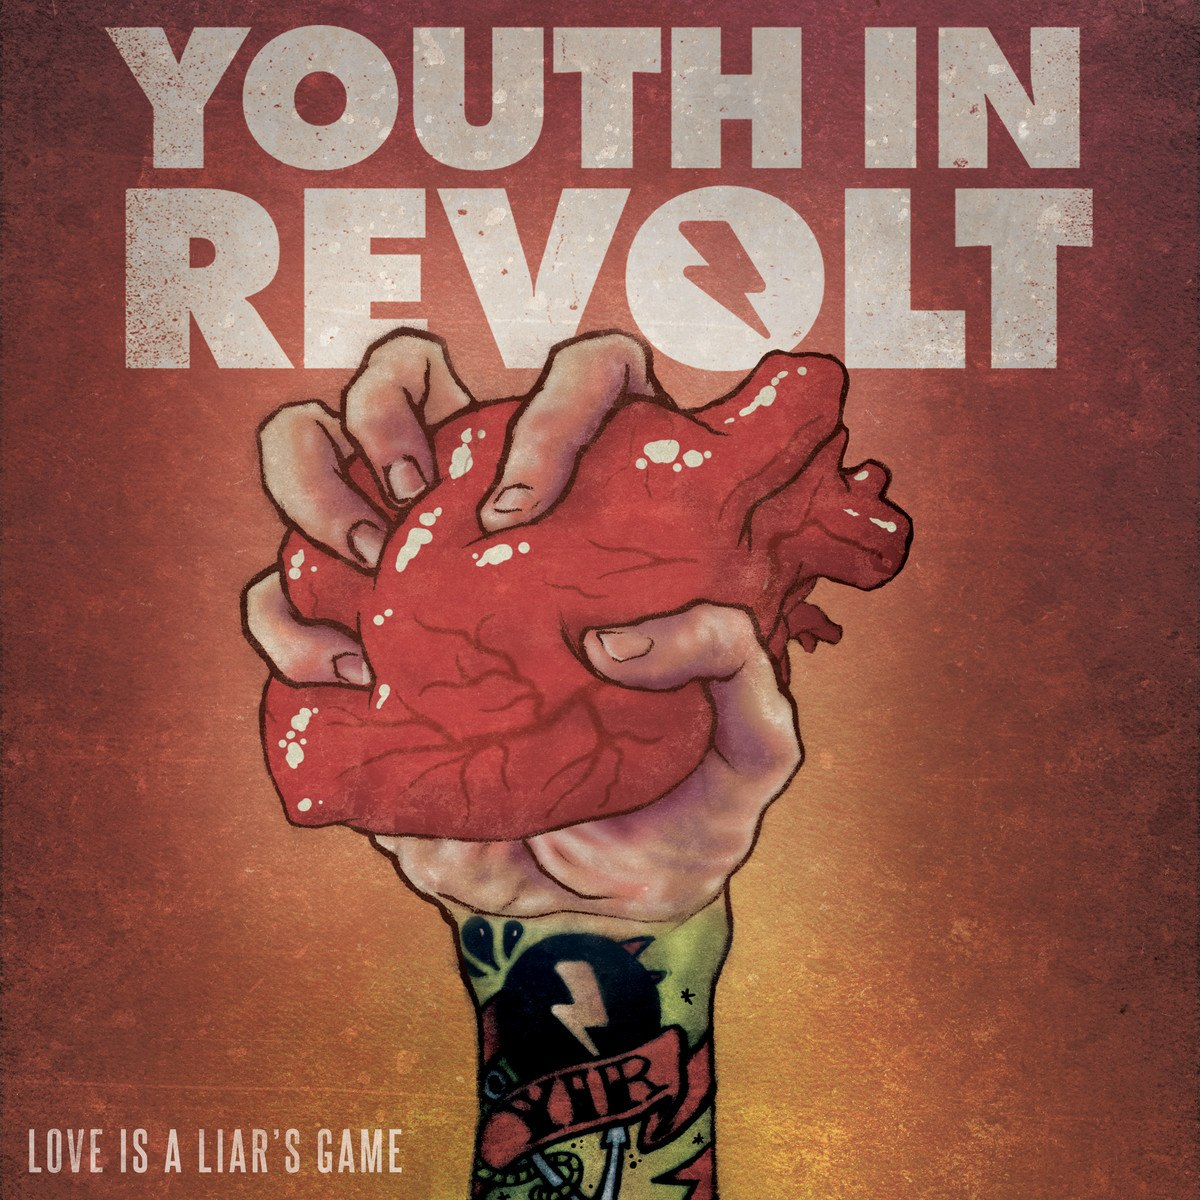 love and youth: